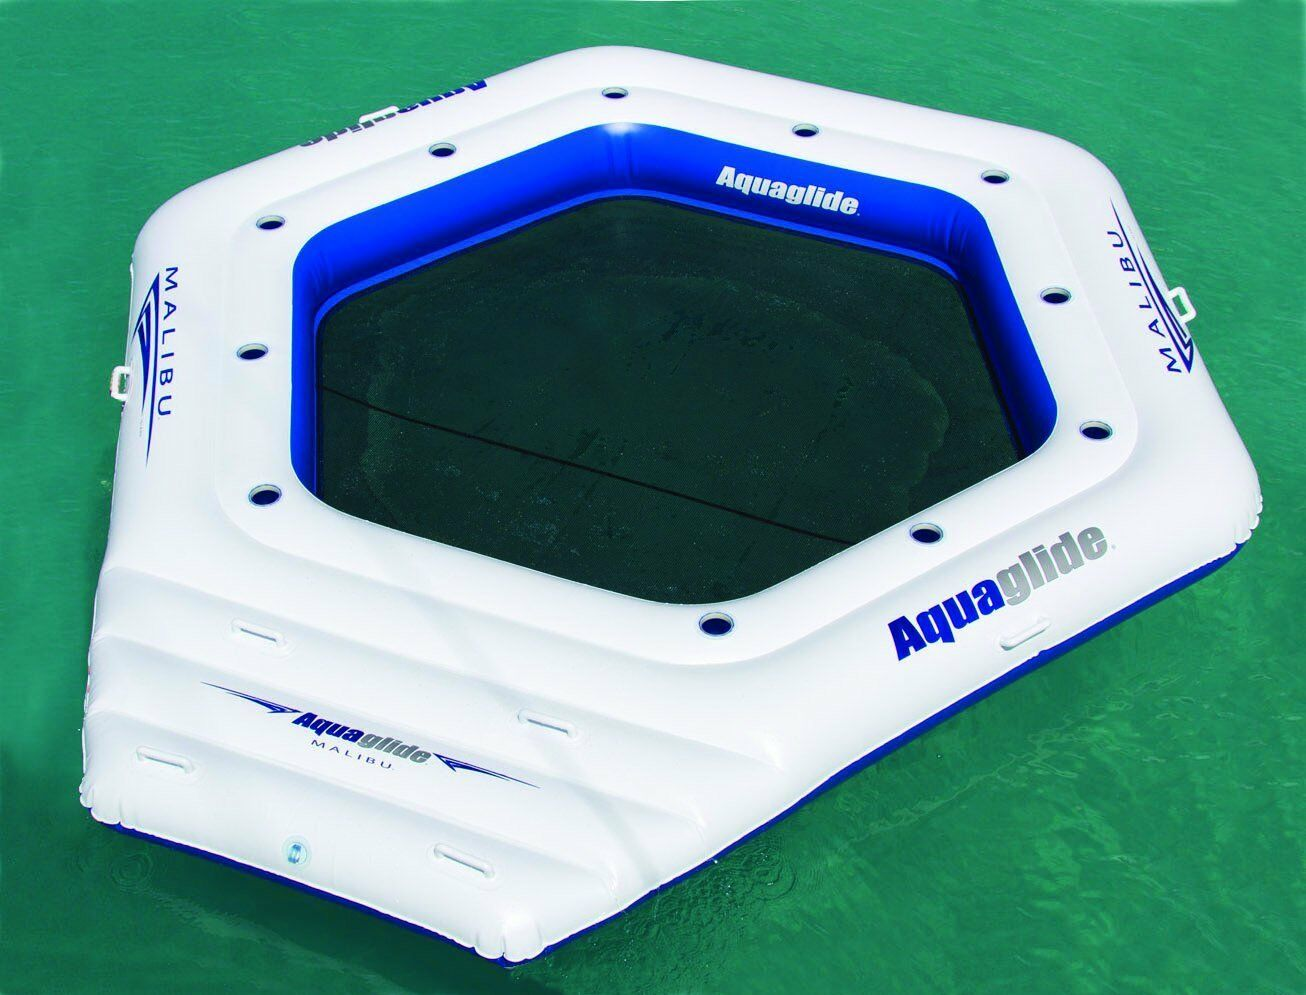 NEW Aquaglide Malibu Island Waterskiing Towables with Multiple Cup Holders